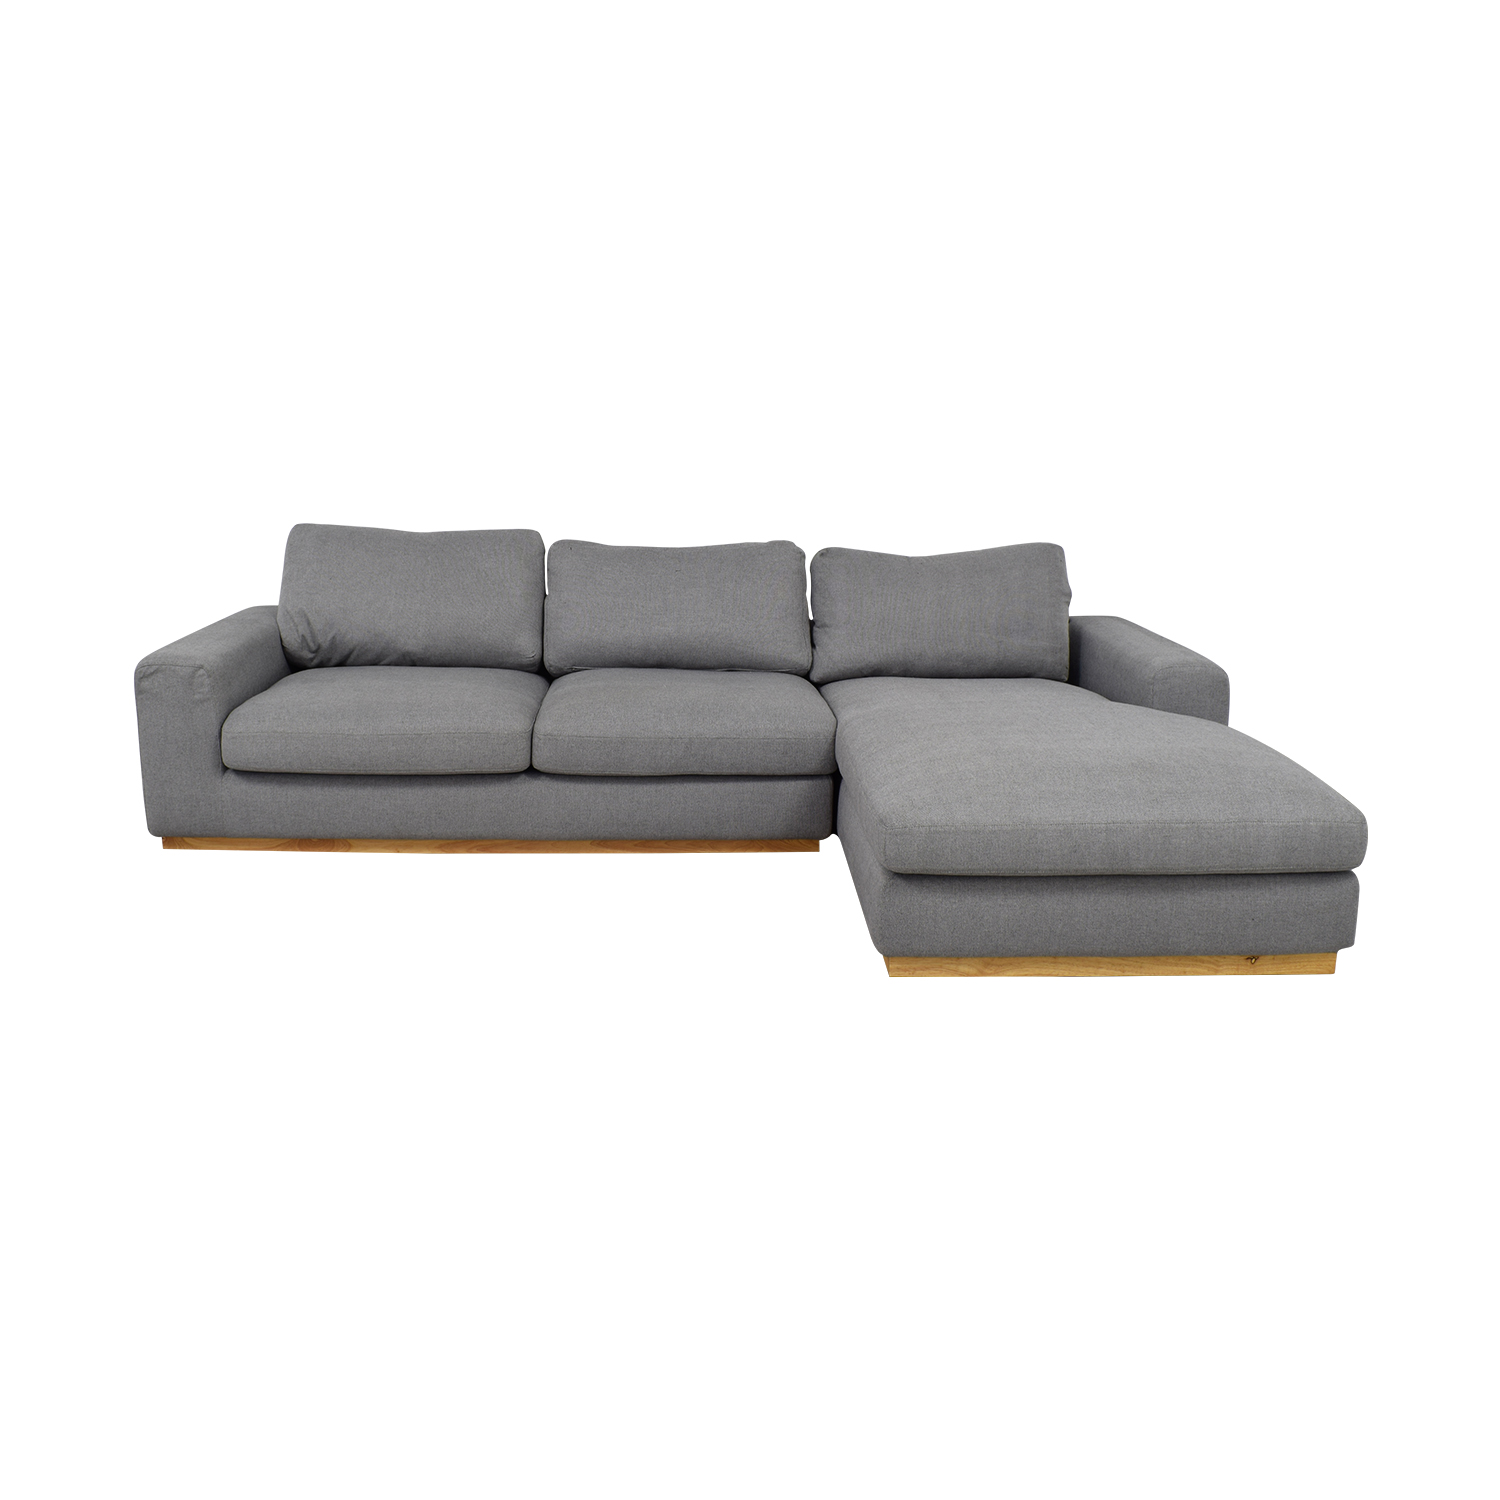 Rove Concepts Rove Concepts Noah Grey Chaise Sectional price